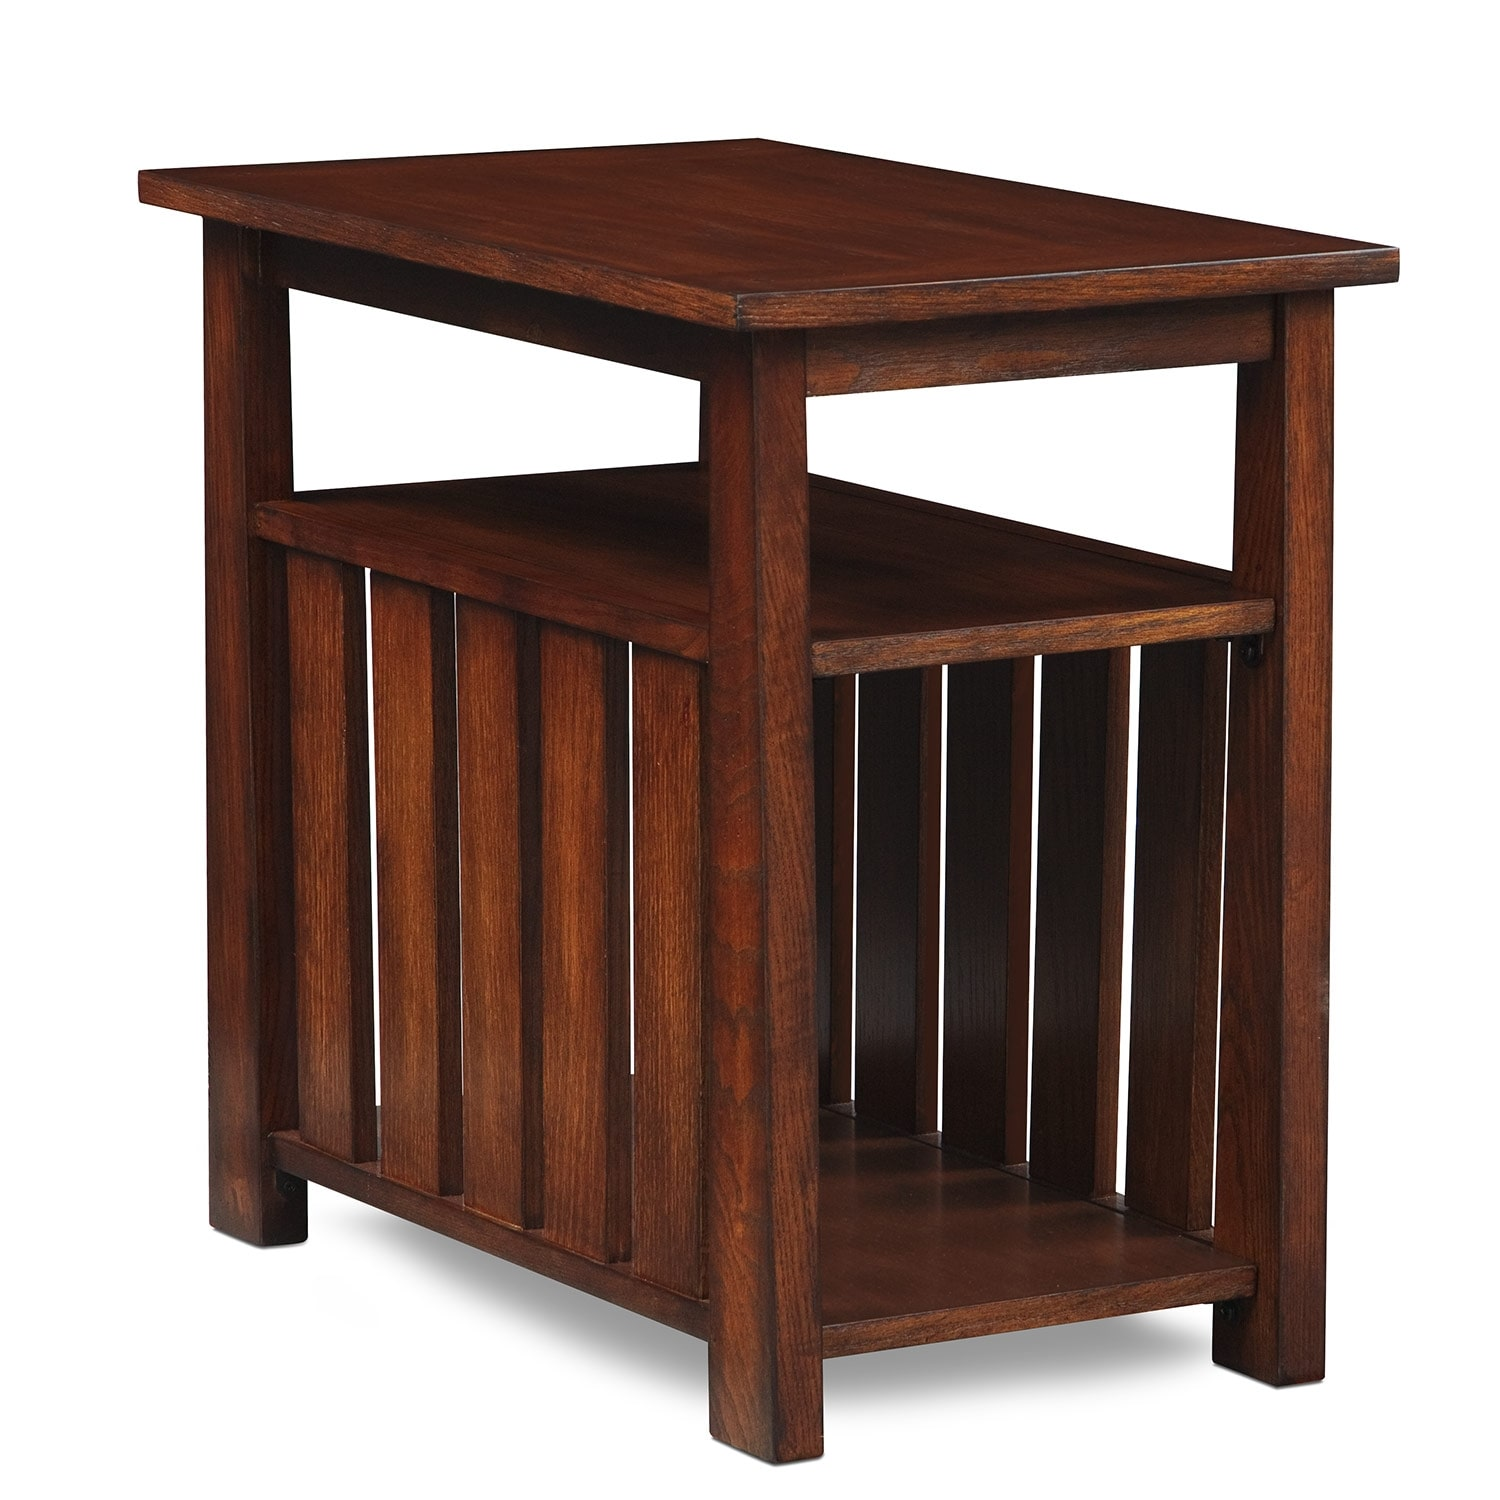 [Tribute Chairside Table]